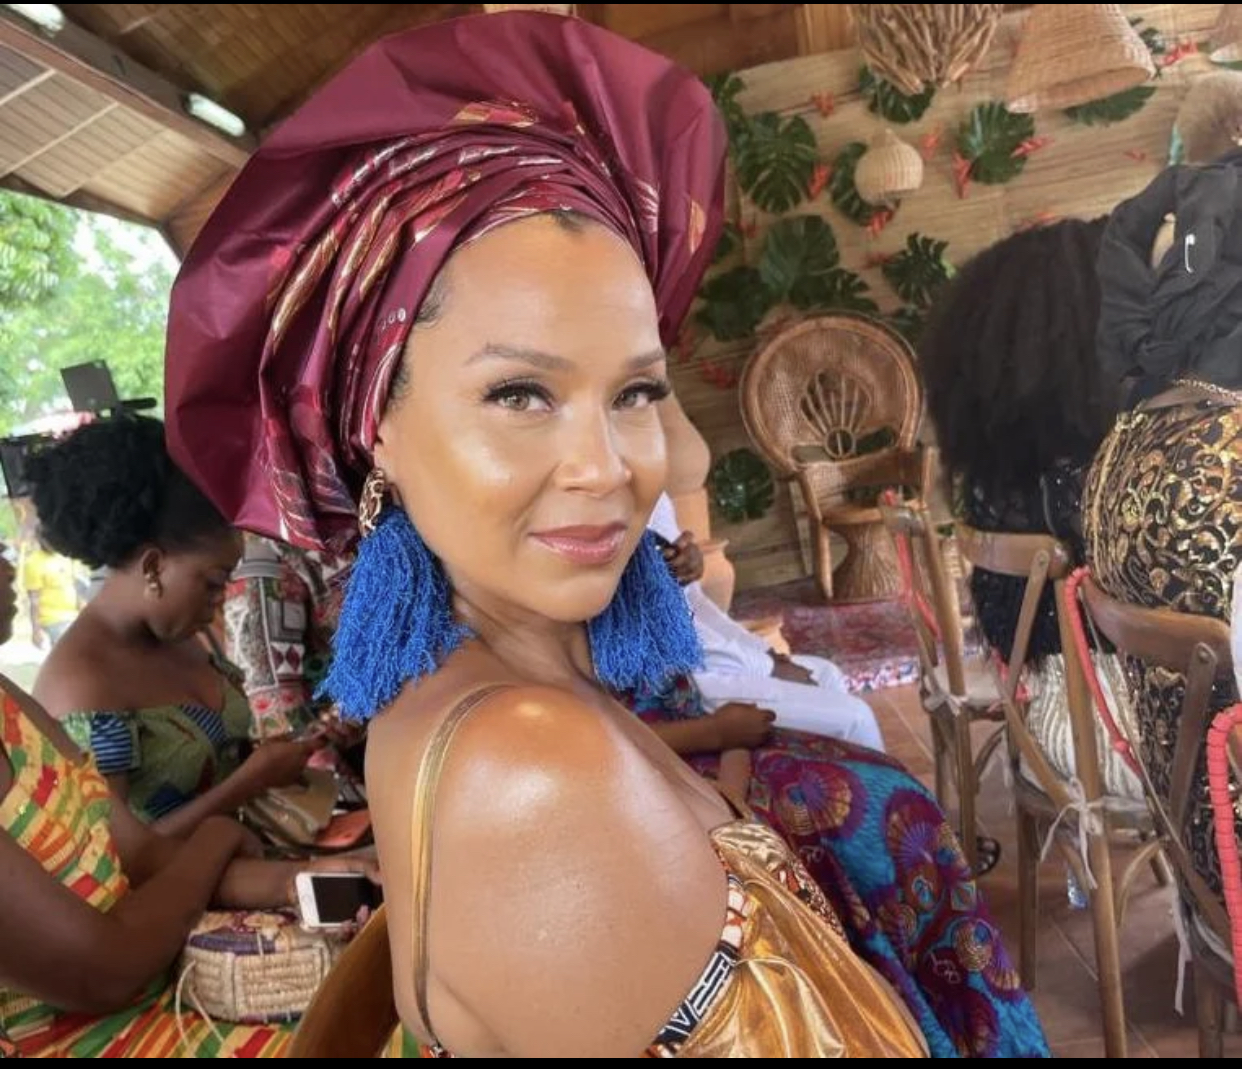 After being enstooled as Queen Mother in 2019, LisaRaye Shares Her Favorite Spots To Eat, Party, And Visit In Ghana